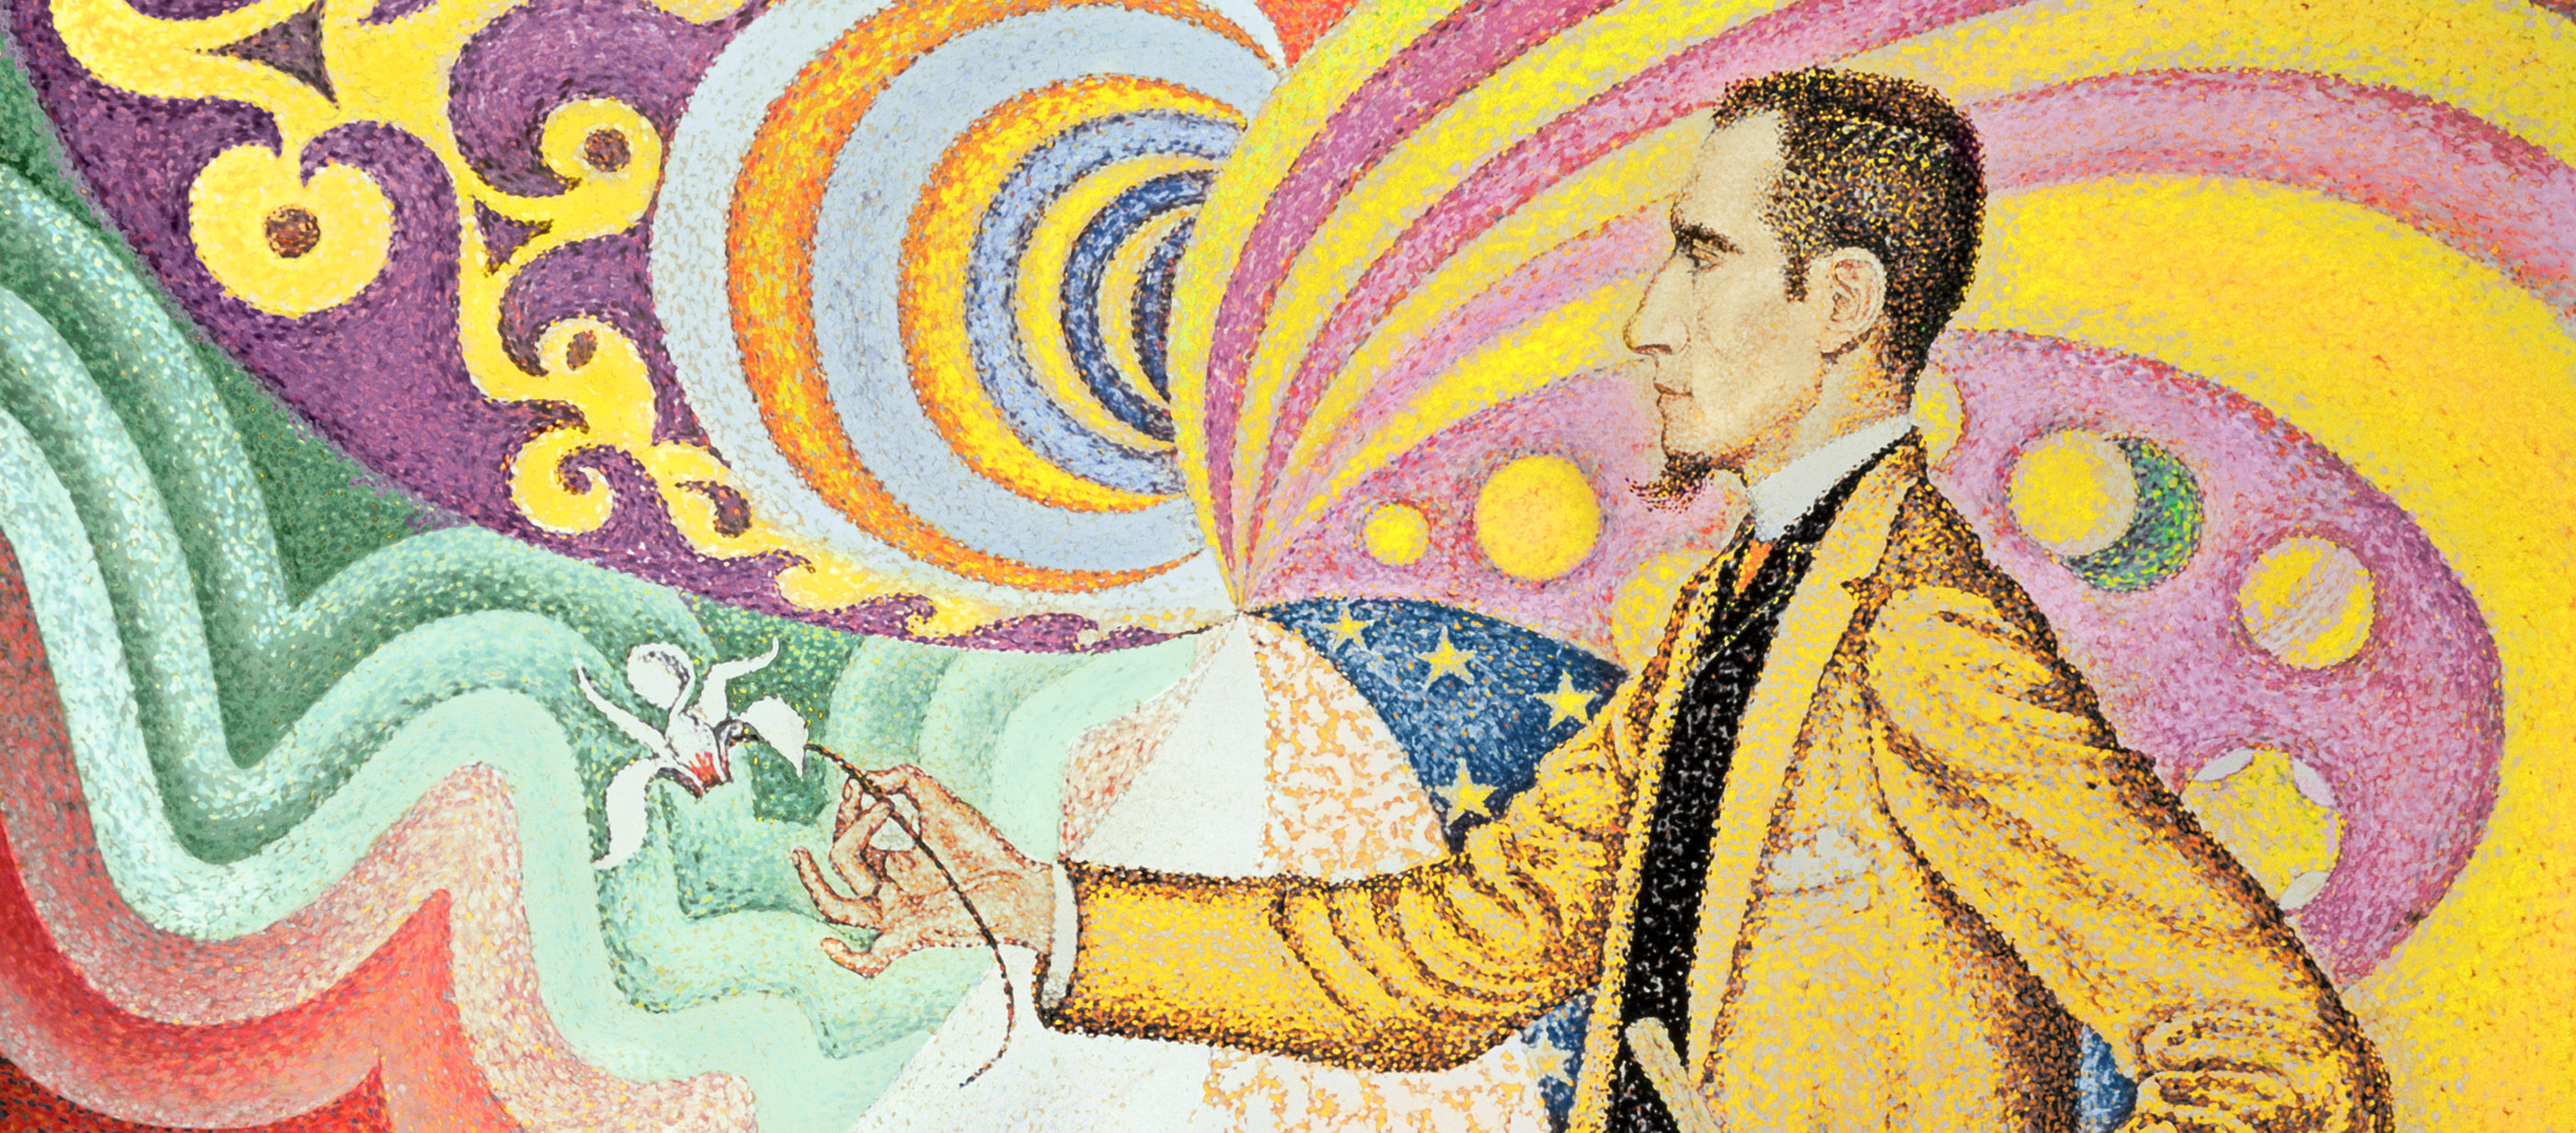 Opus 217. Against the Enamel of a Background Rhythmic with Beats and Angles, Tones and Tints, Portrait of Félix Fénéon in 1890, by Paul Signac, 1890. The Museum of Modern Art, New York, New York.